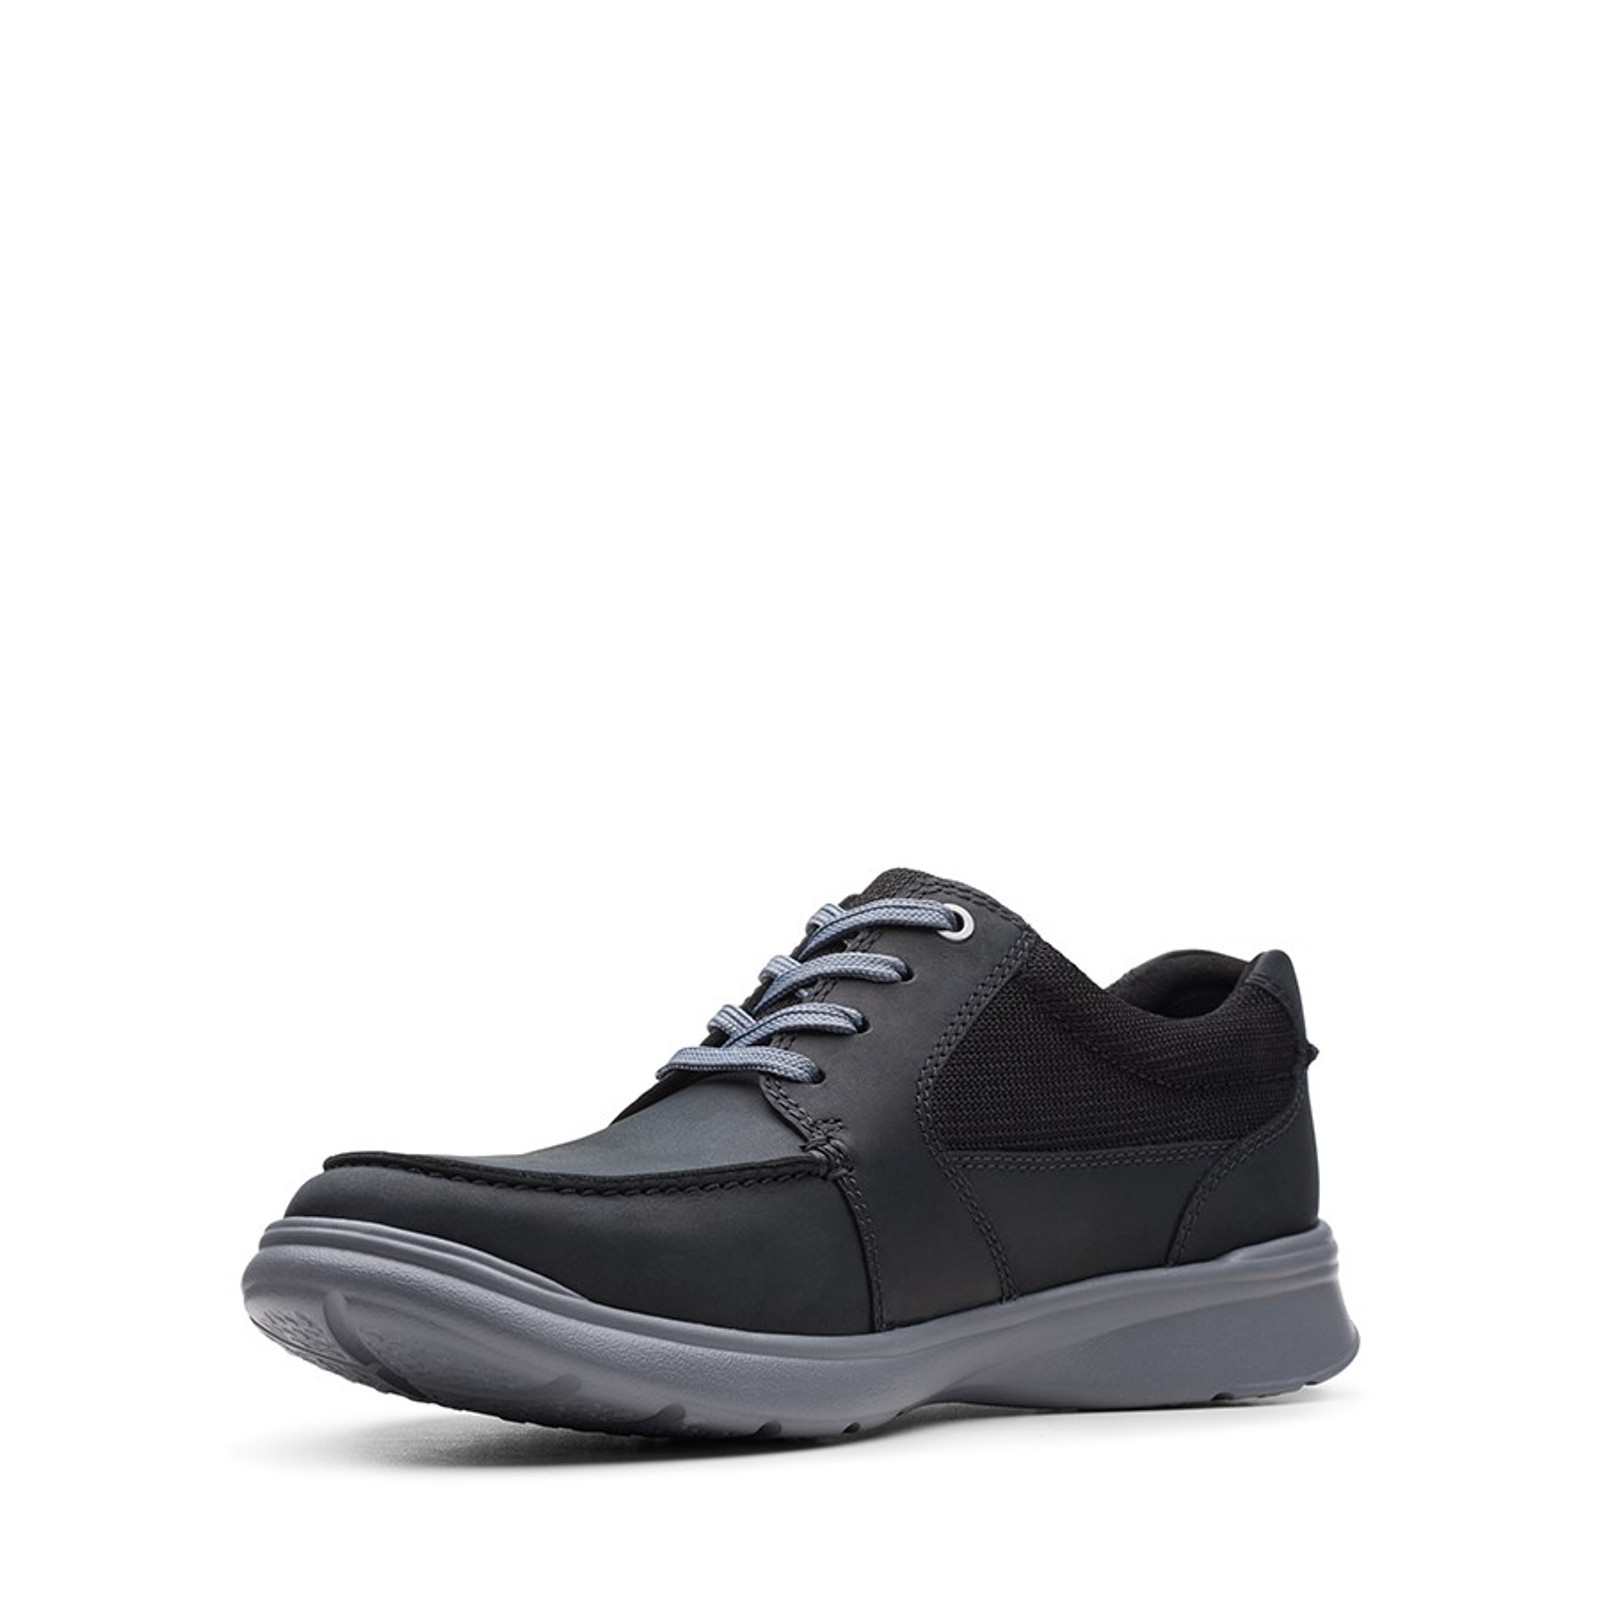 Clarks Mens COTRELL LANE Black Combo Leather